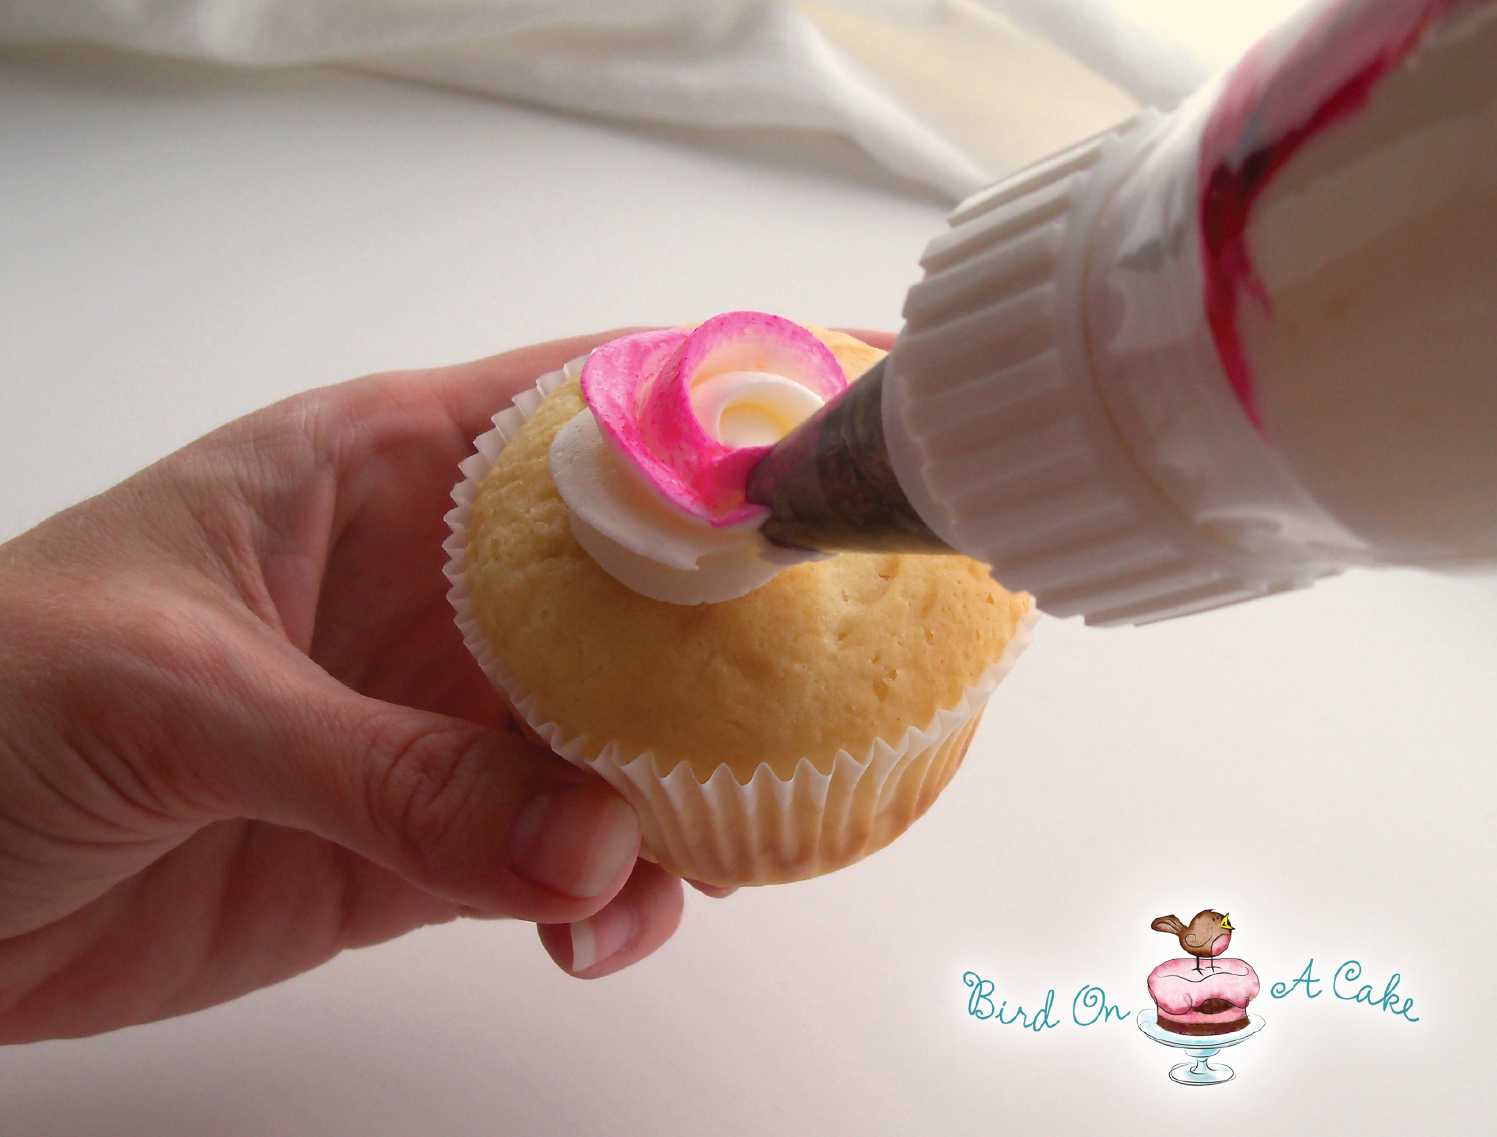 Rose How to Frost Cupcakes 1497 x 1137 · 972 kB · jpeg